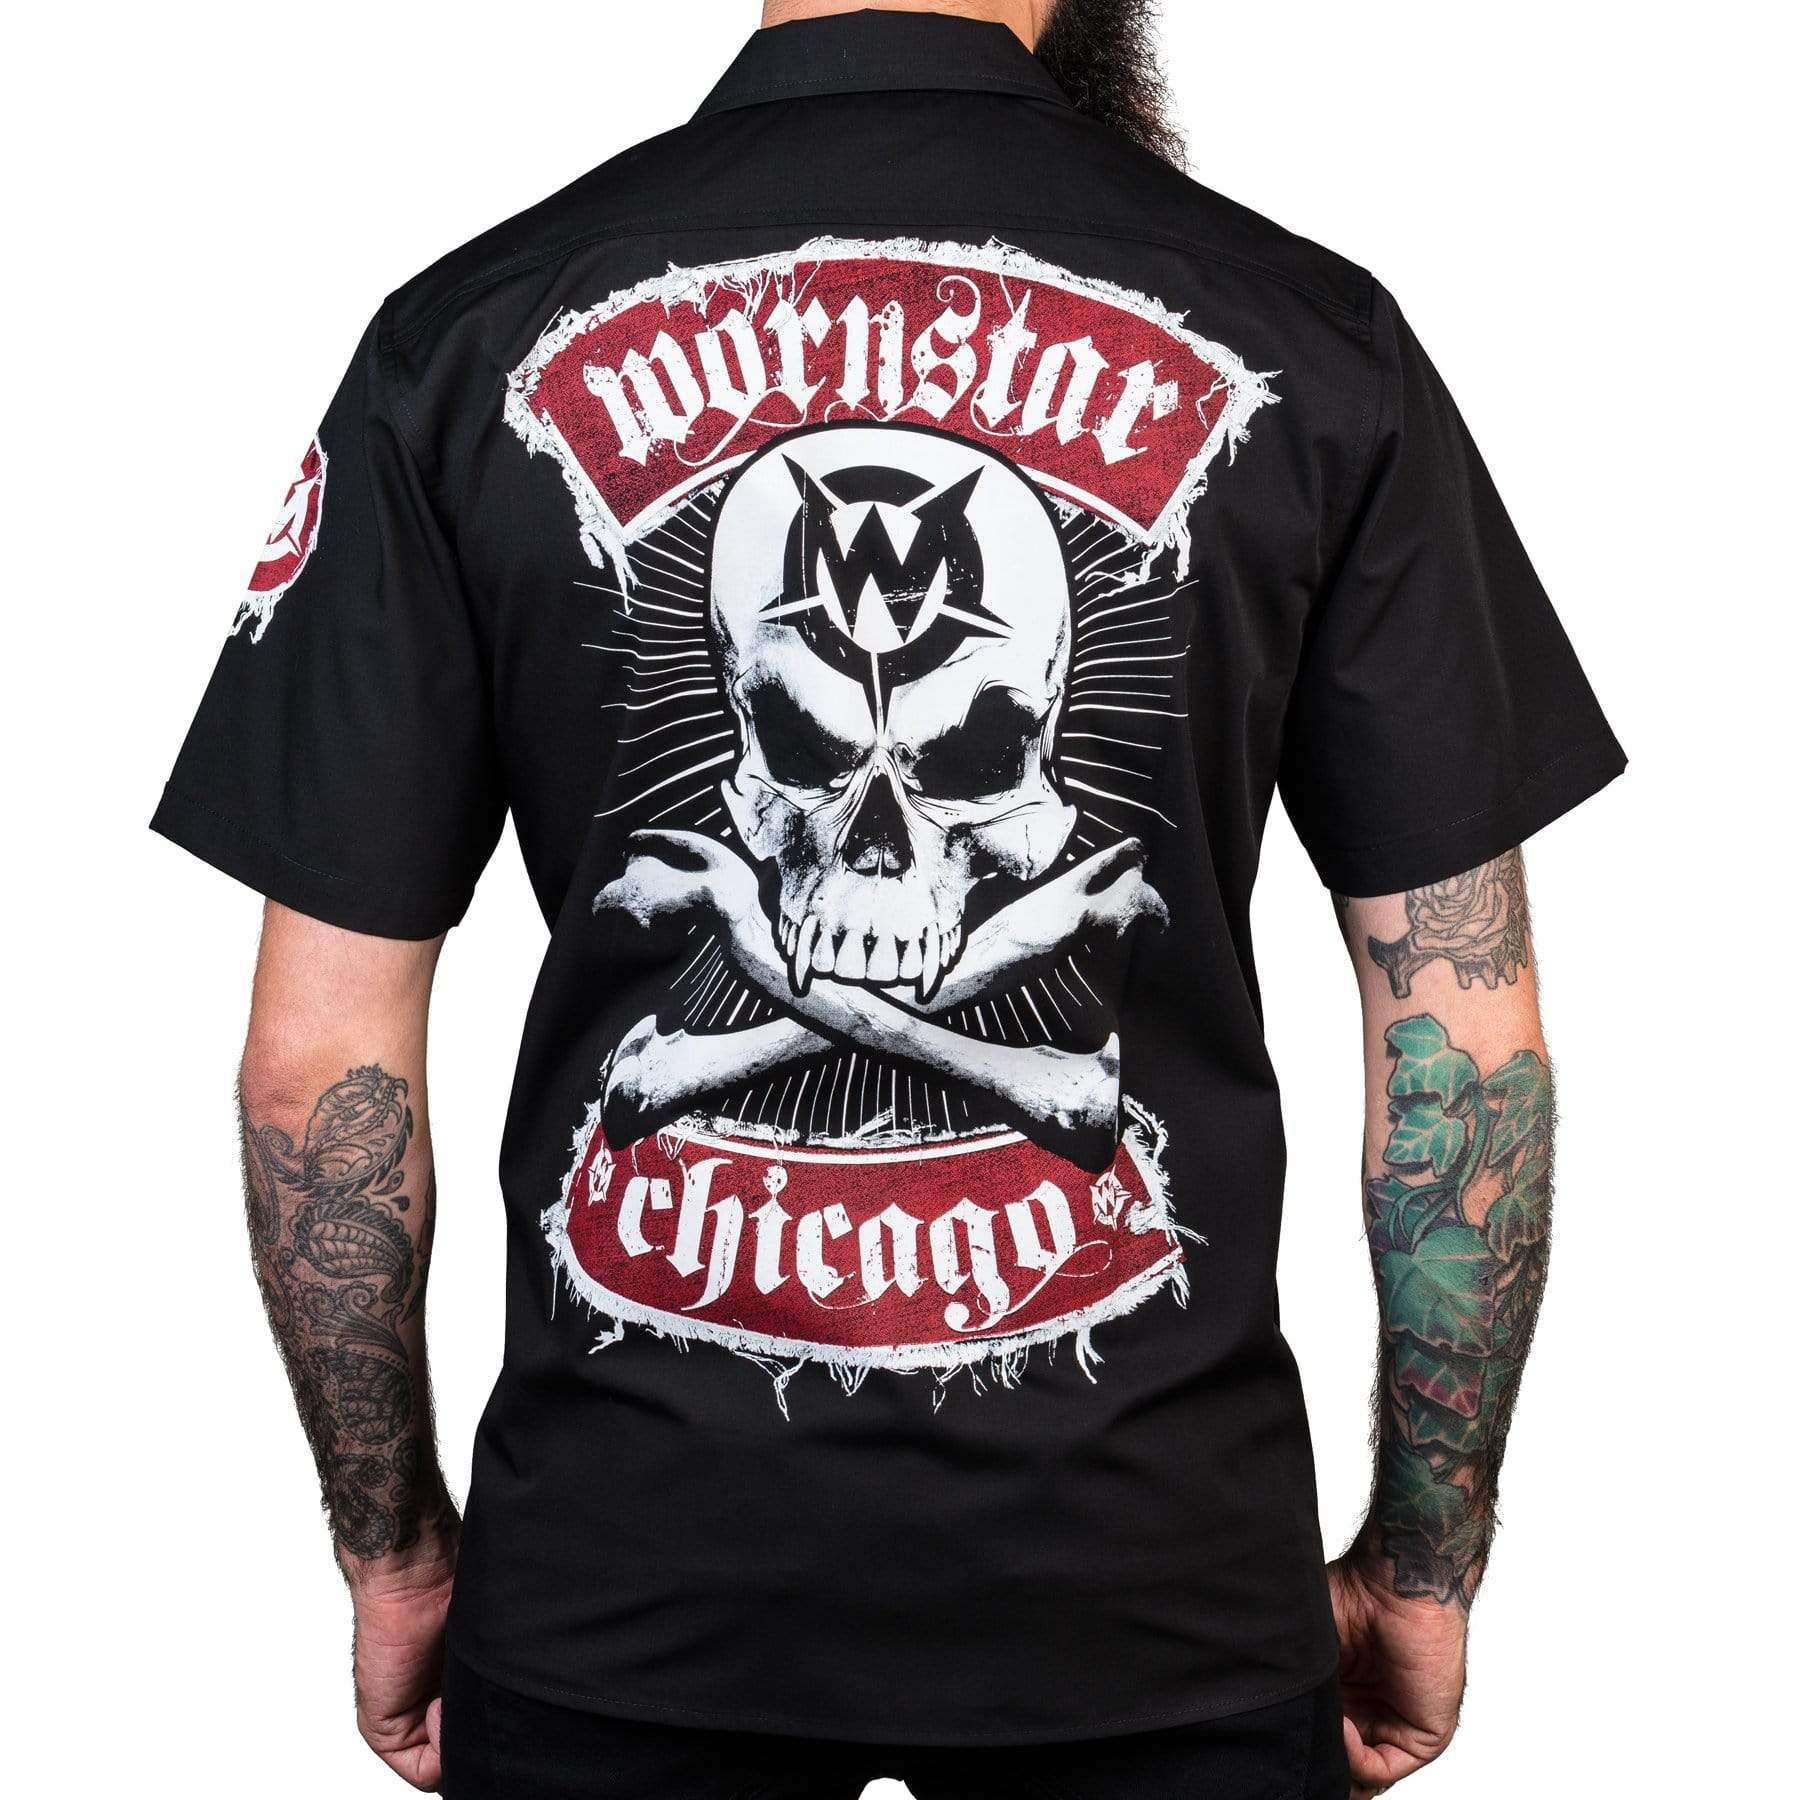 Wornstar Clothing Chicago Skull short sleeve work shirt back with printed skull graphic.